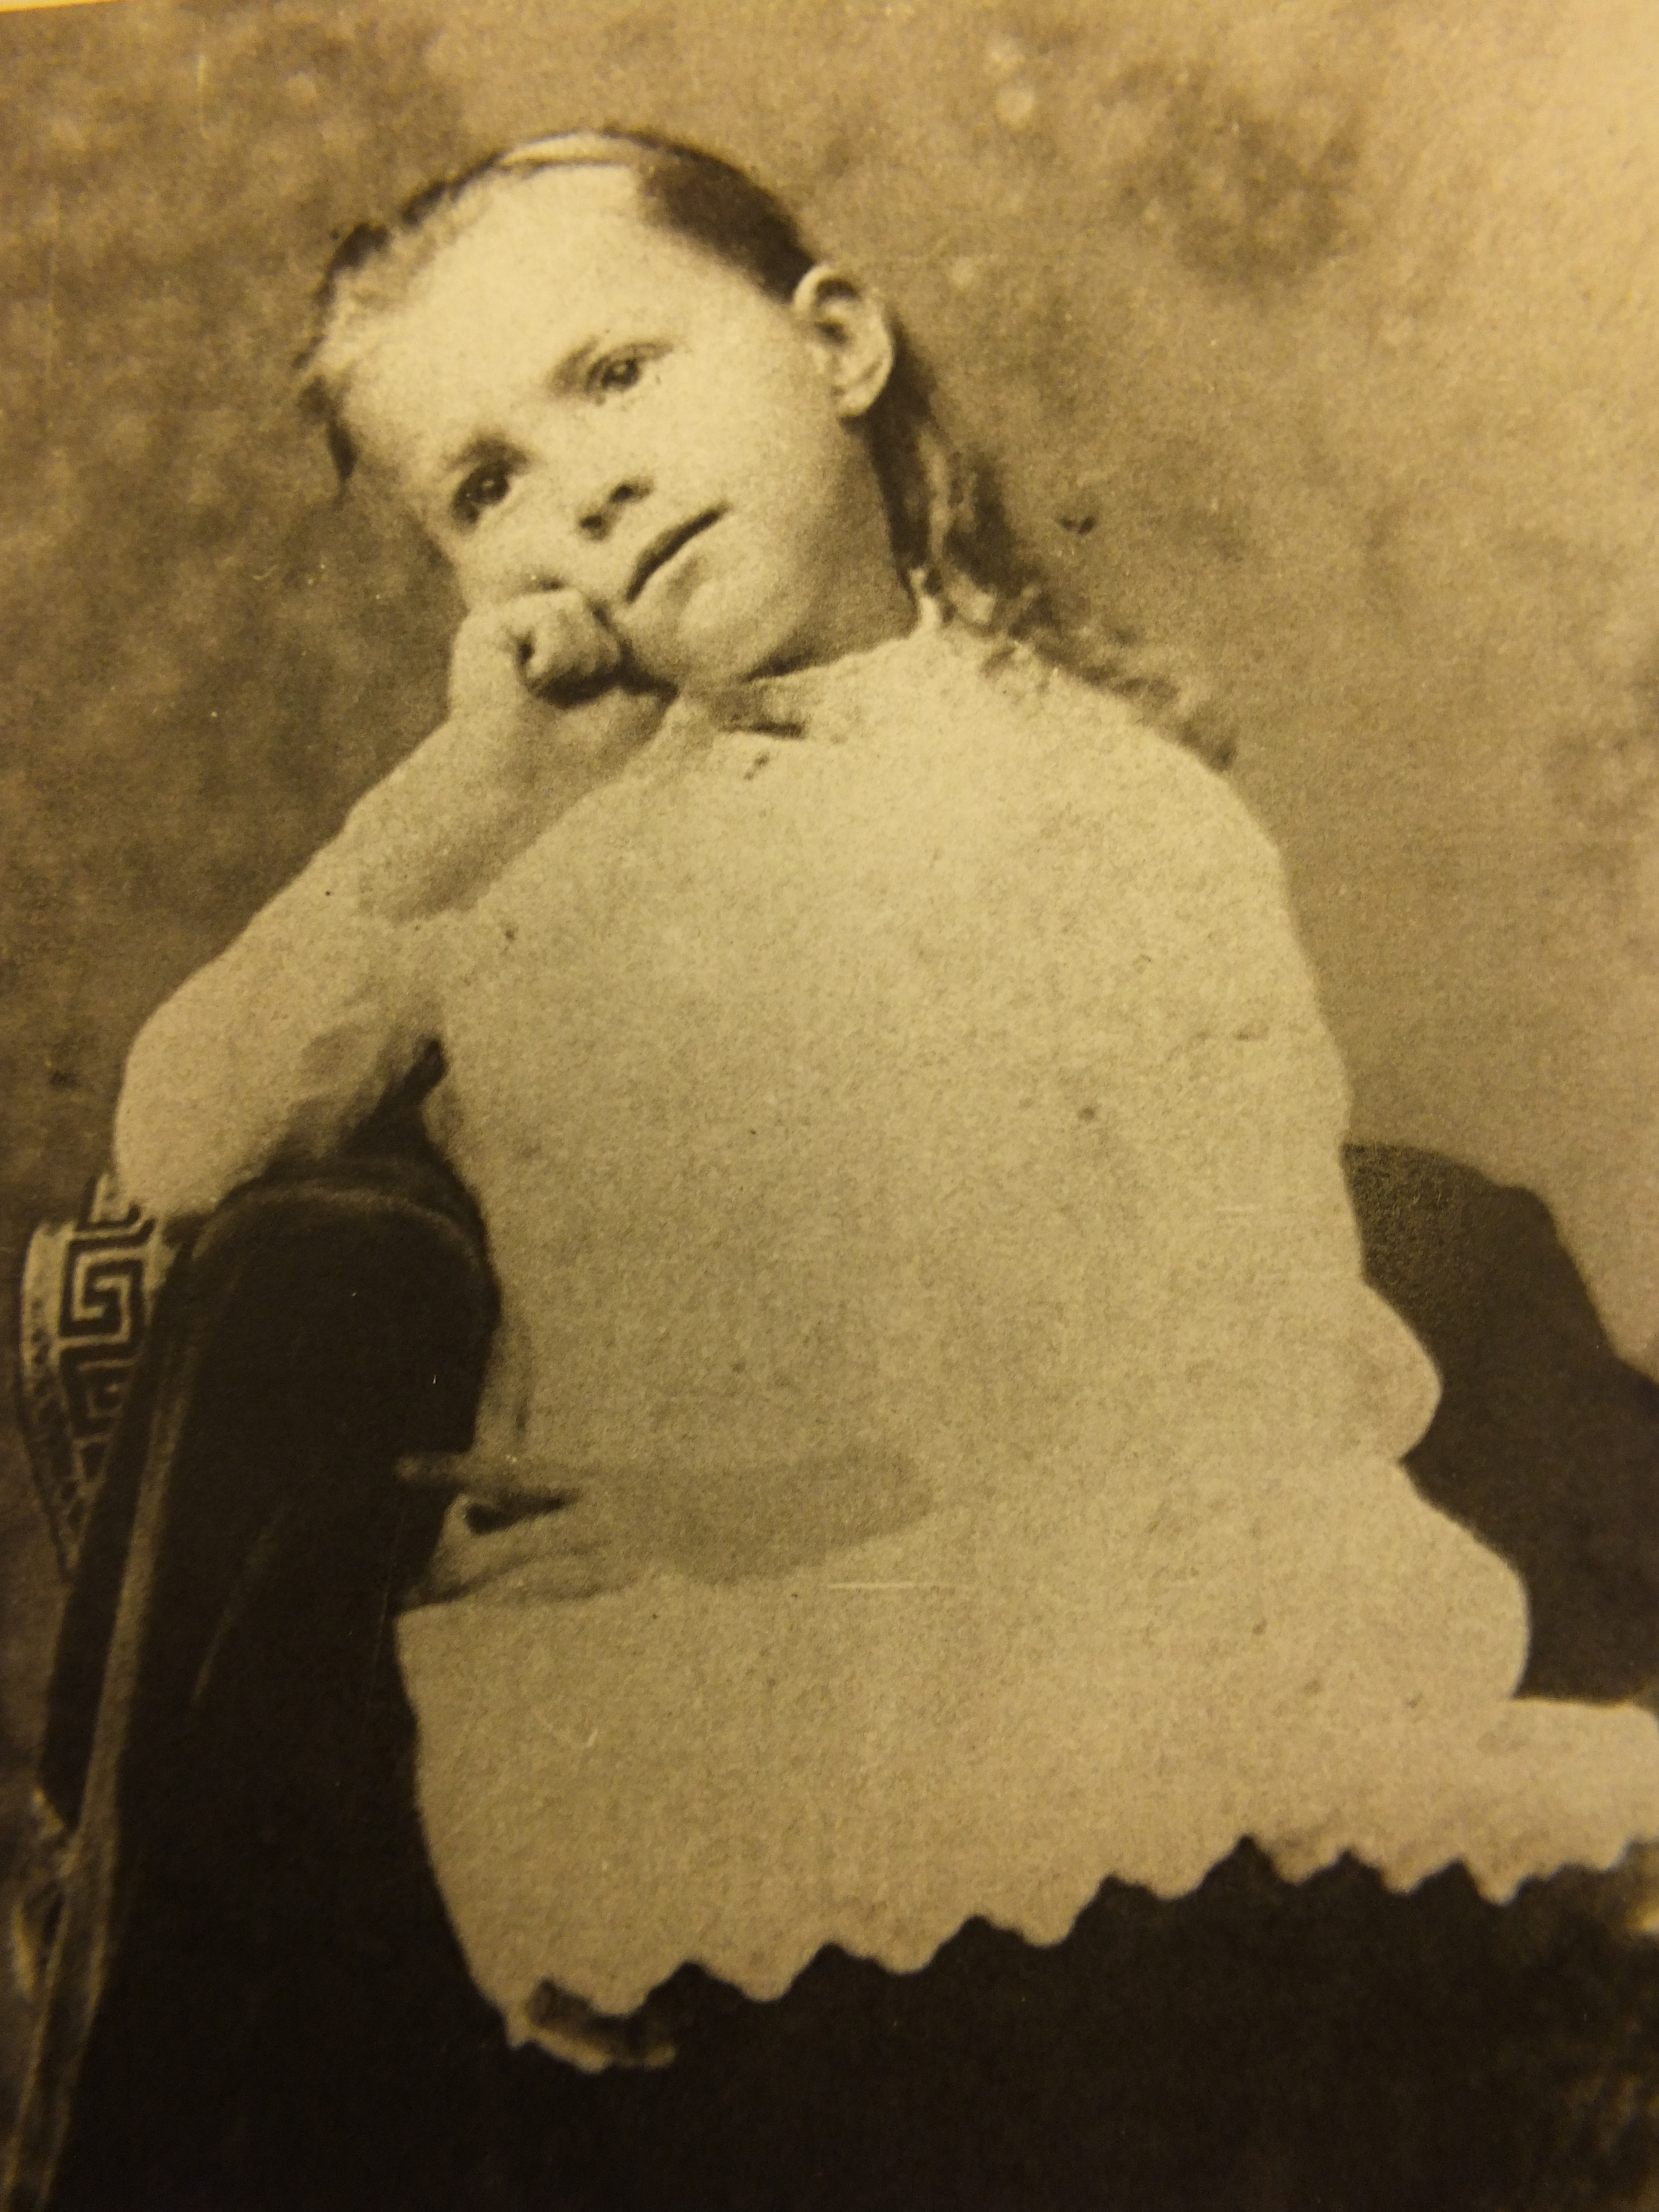 Ruby Scull in 1885, when she was living in a town named after her.